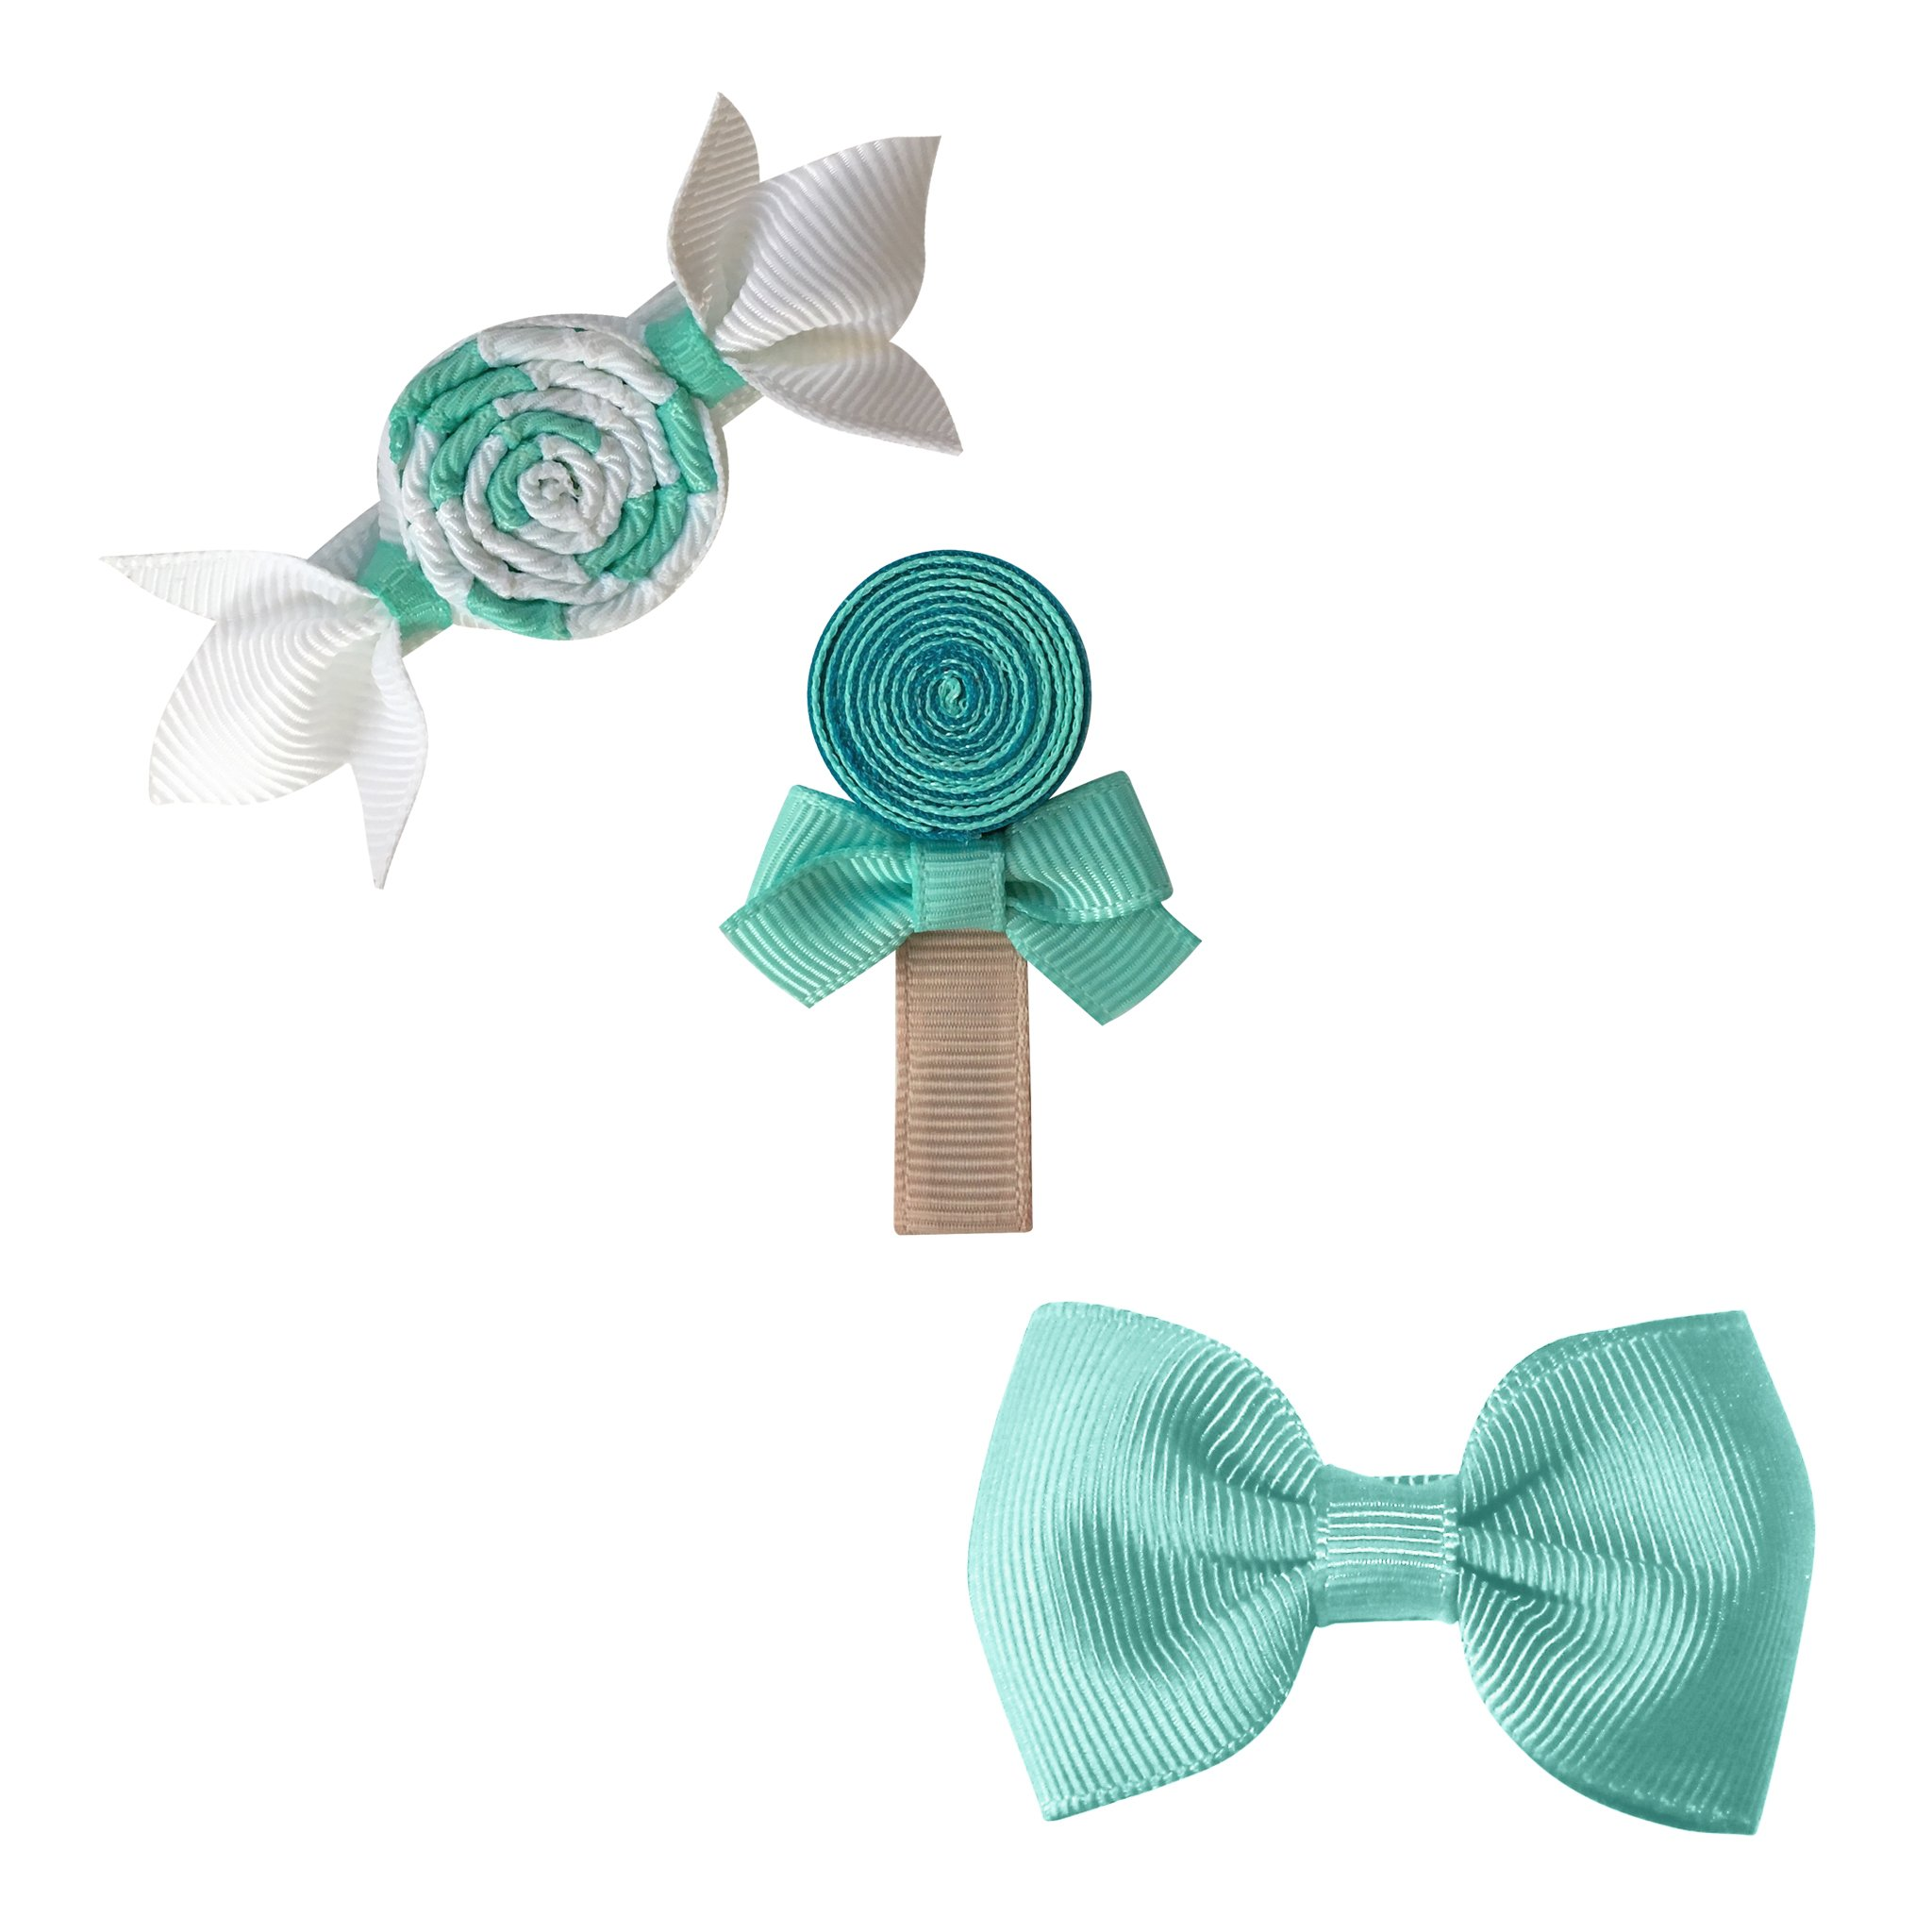 Image of Milledeux® Candy Collection gift set - Bonbon, Lollipop and Bow - aqua